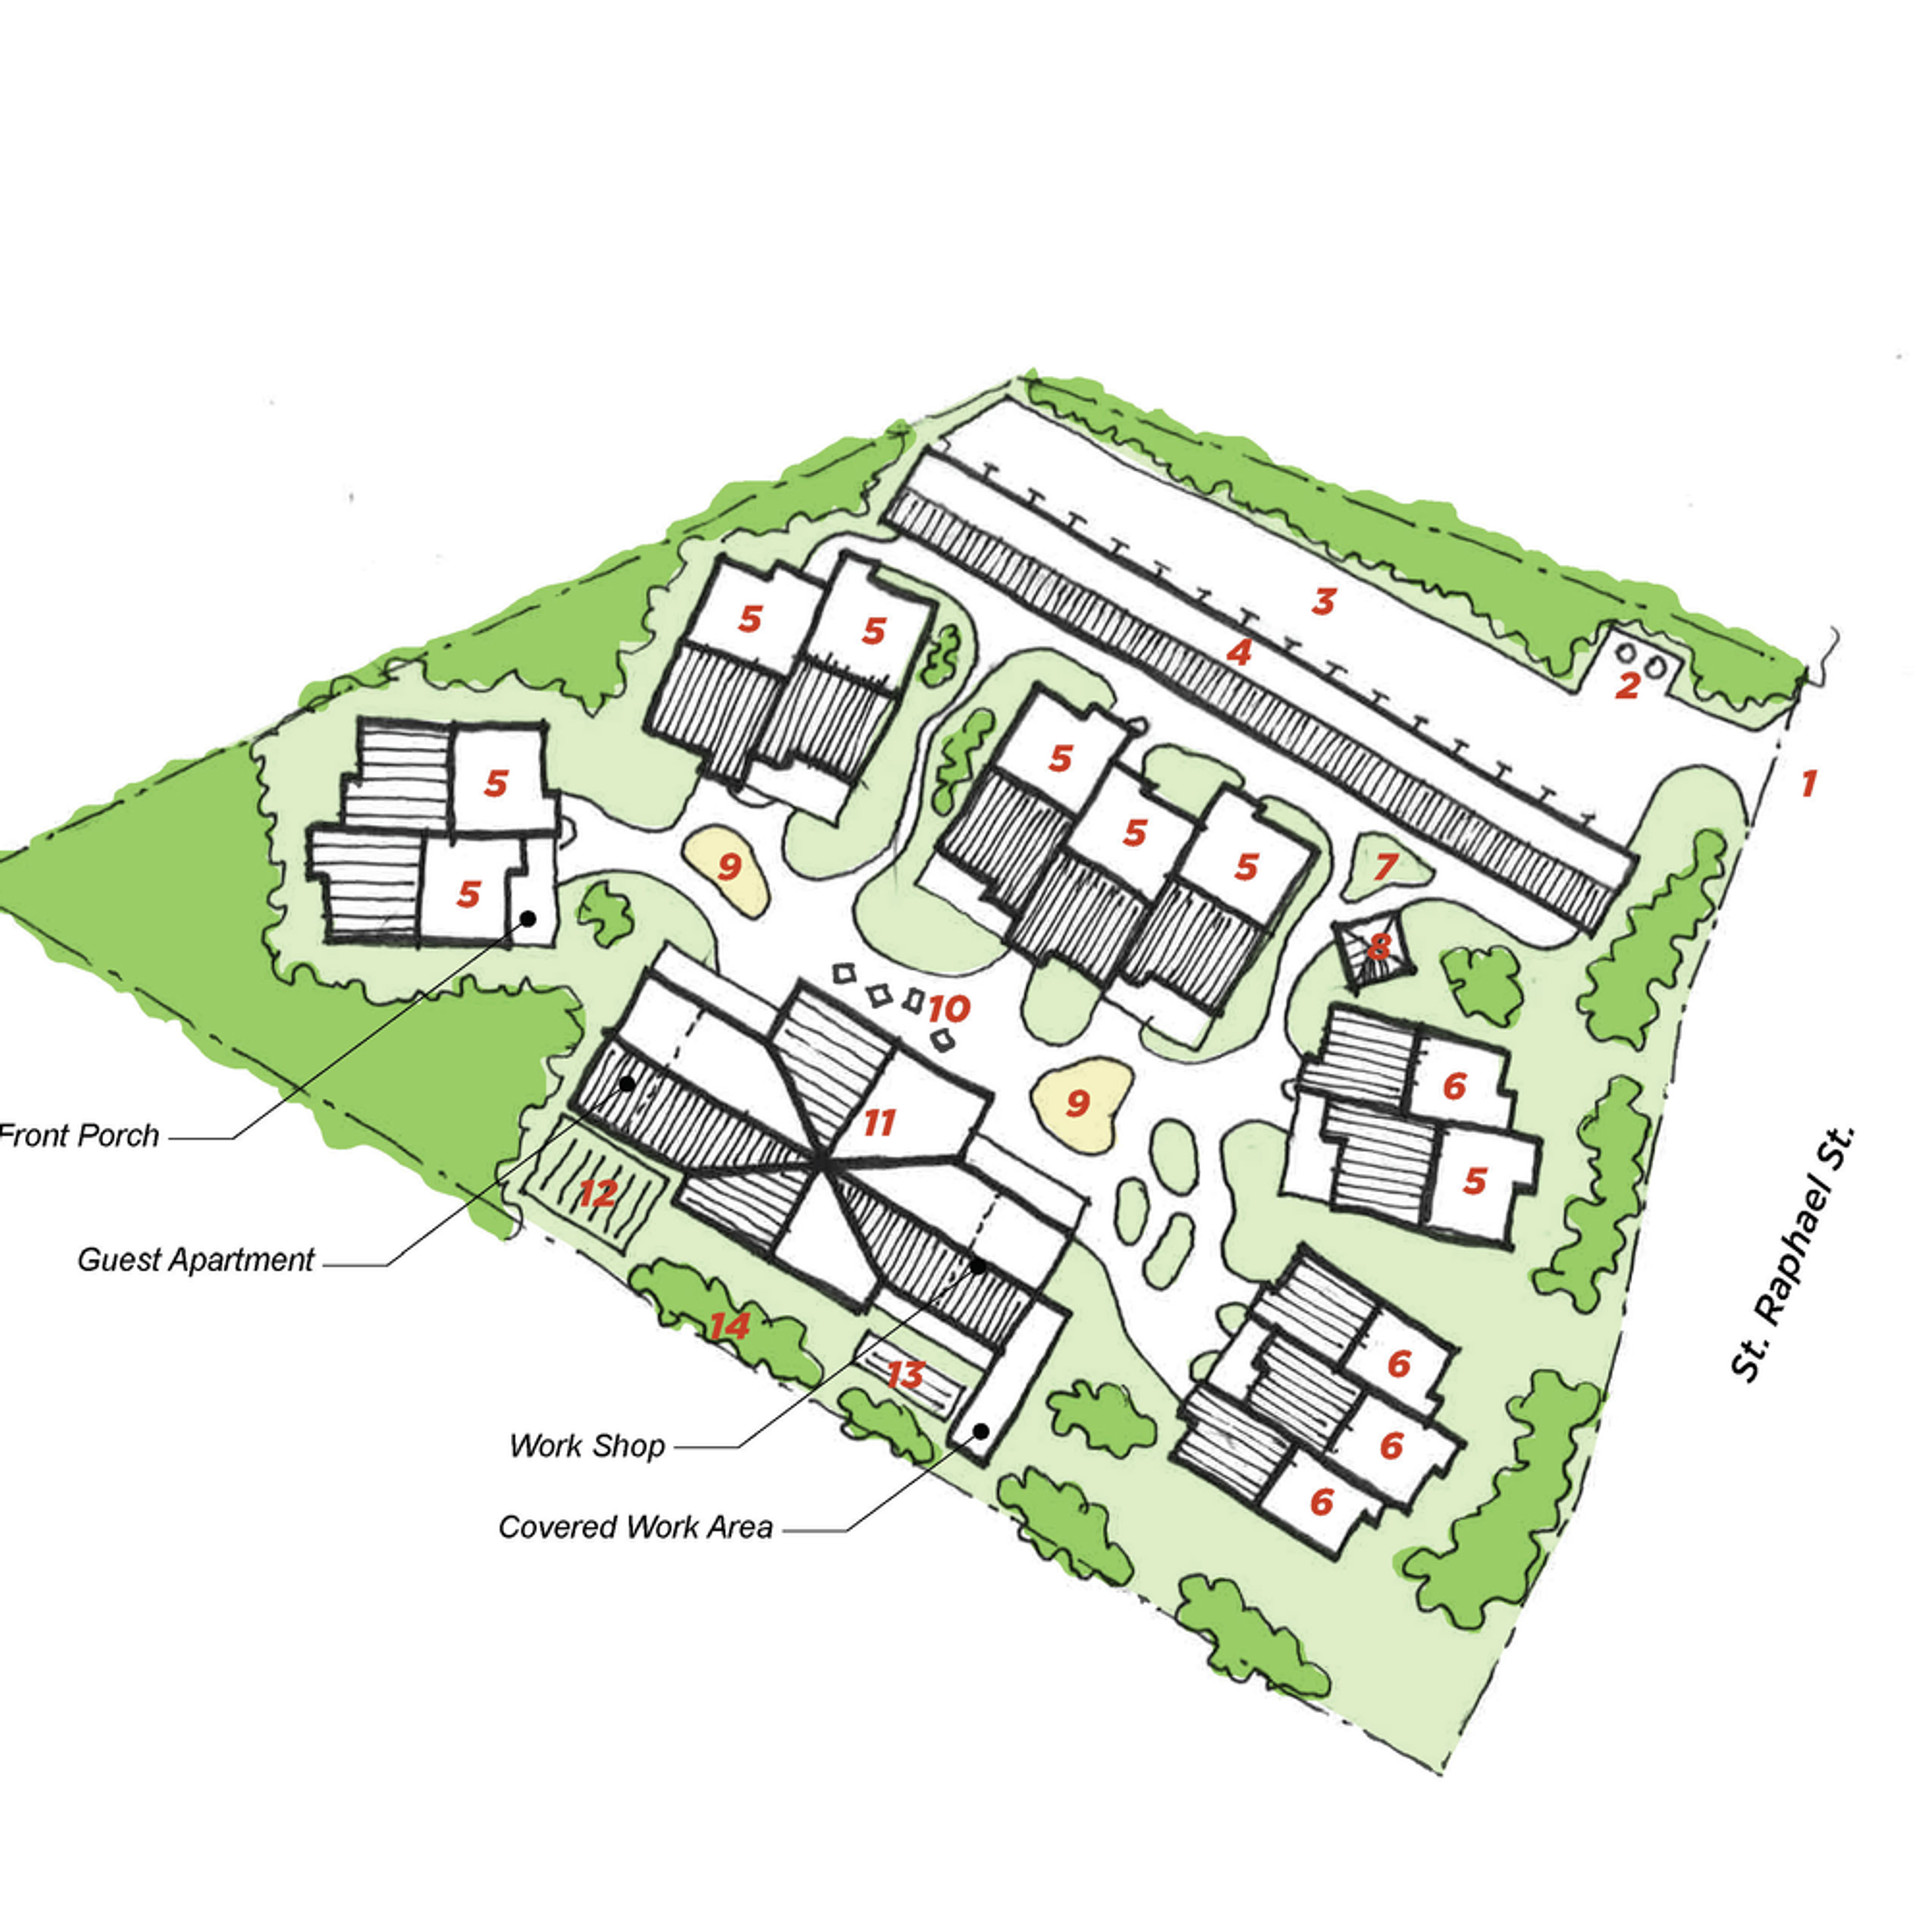 Sweetfern Co-housing Site Study